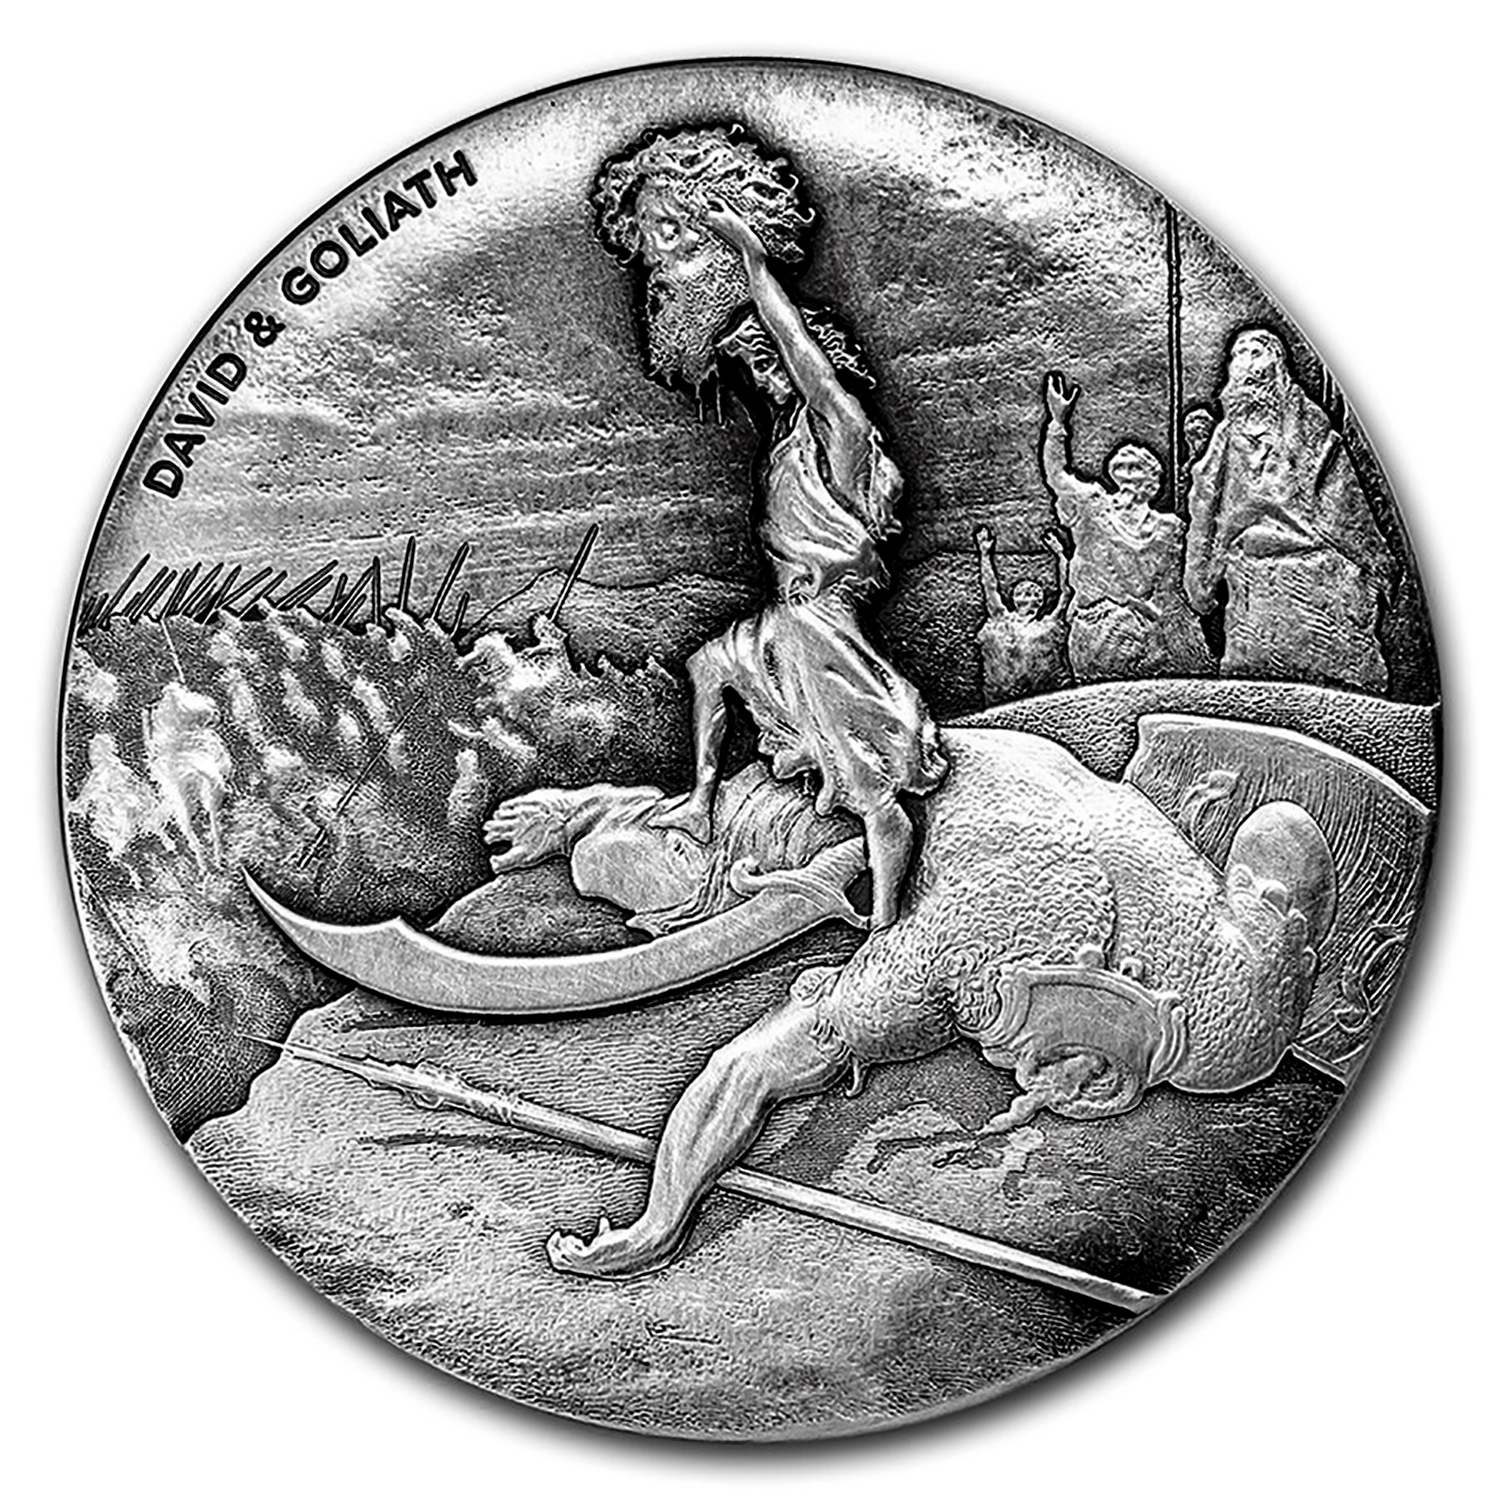 2 oz Silver Coin Biblical Series (David & Goliath)